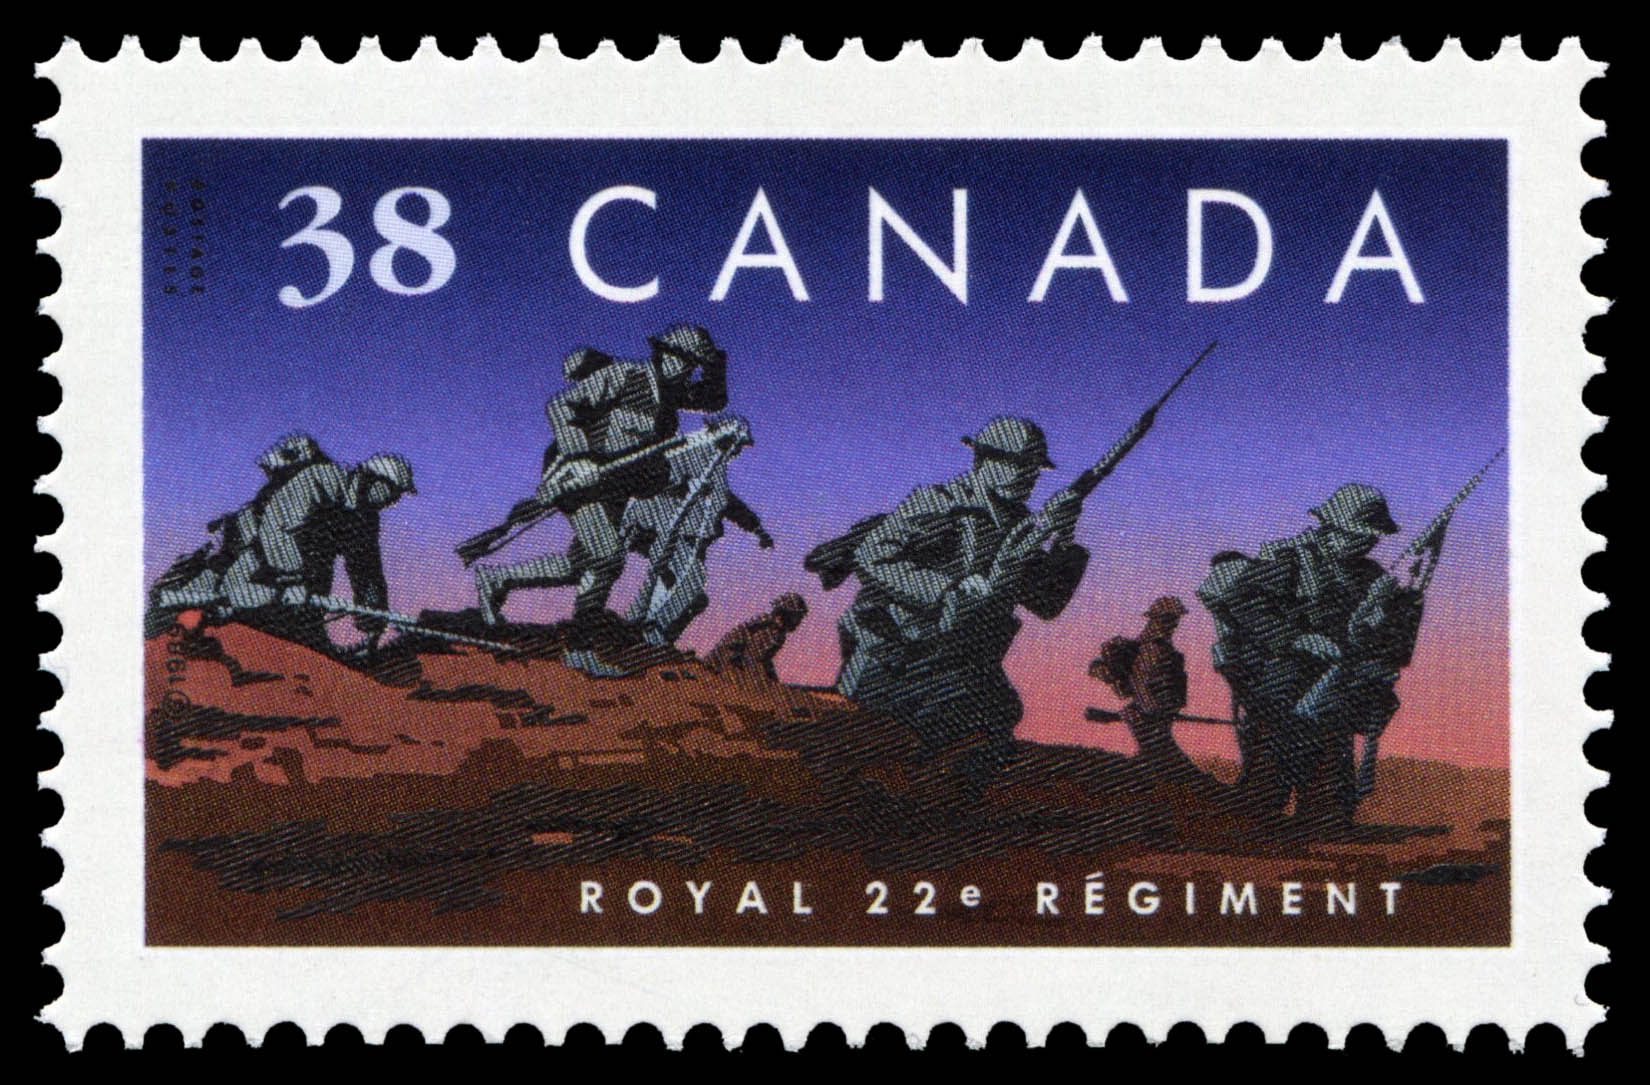 Royal 22e Regiment Canada Postage Stamp